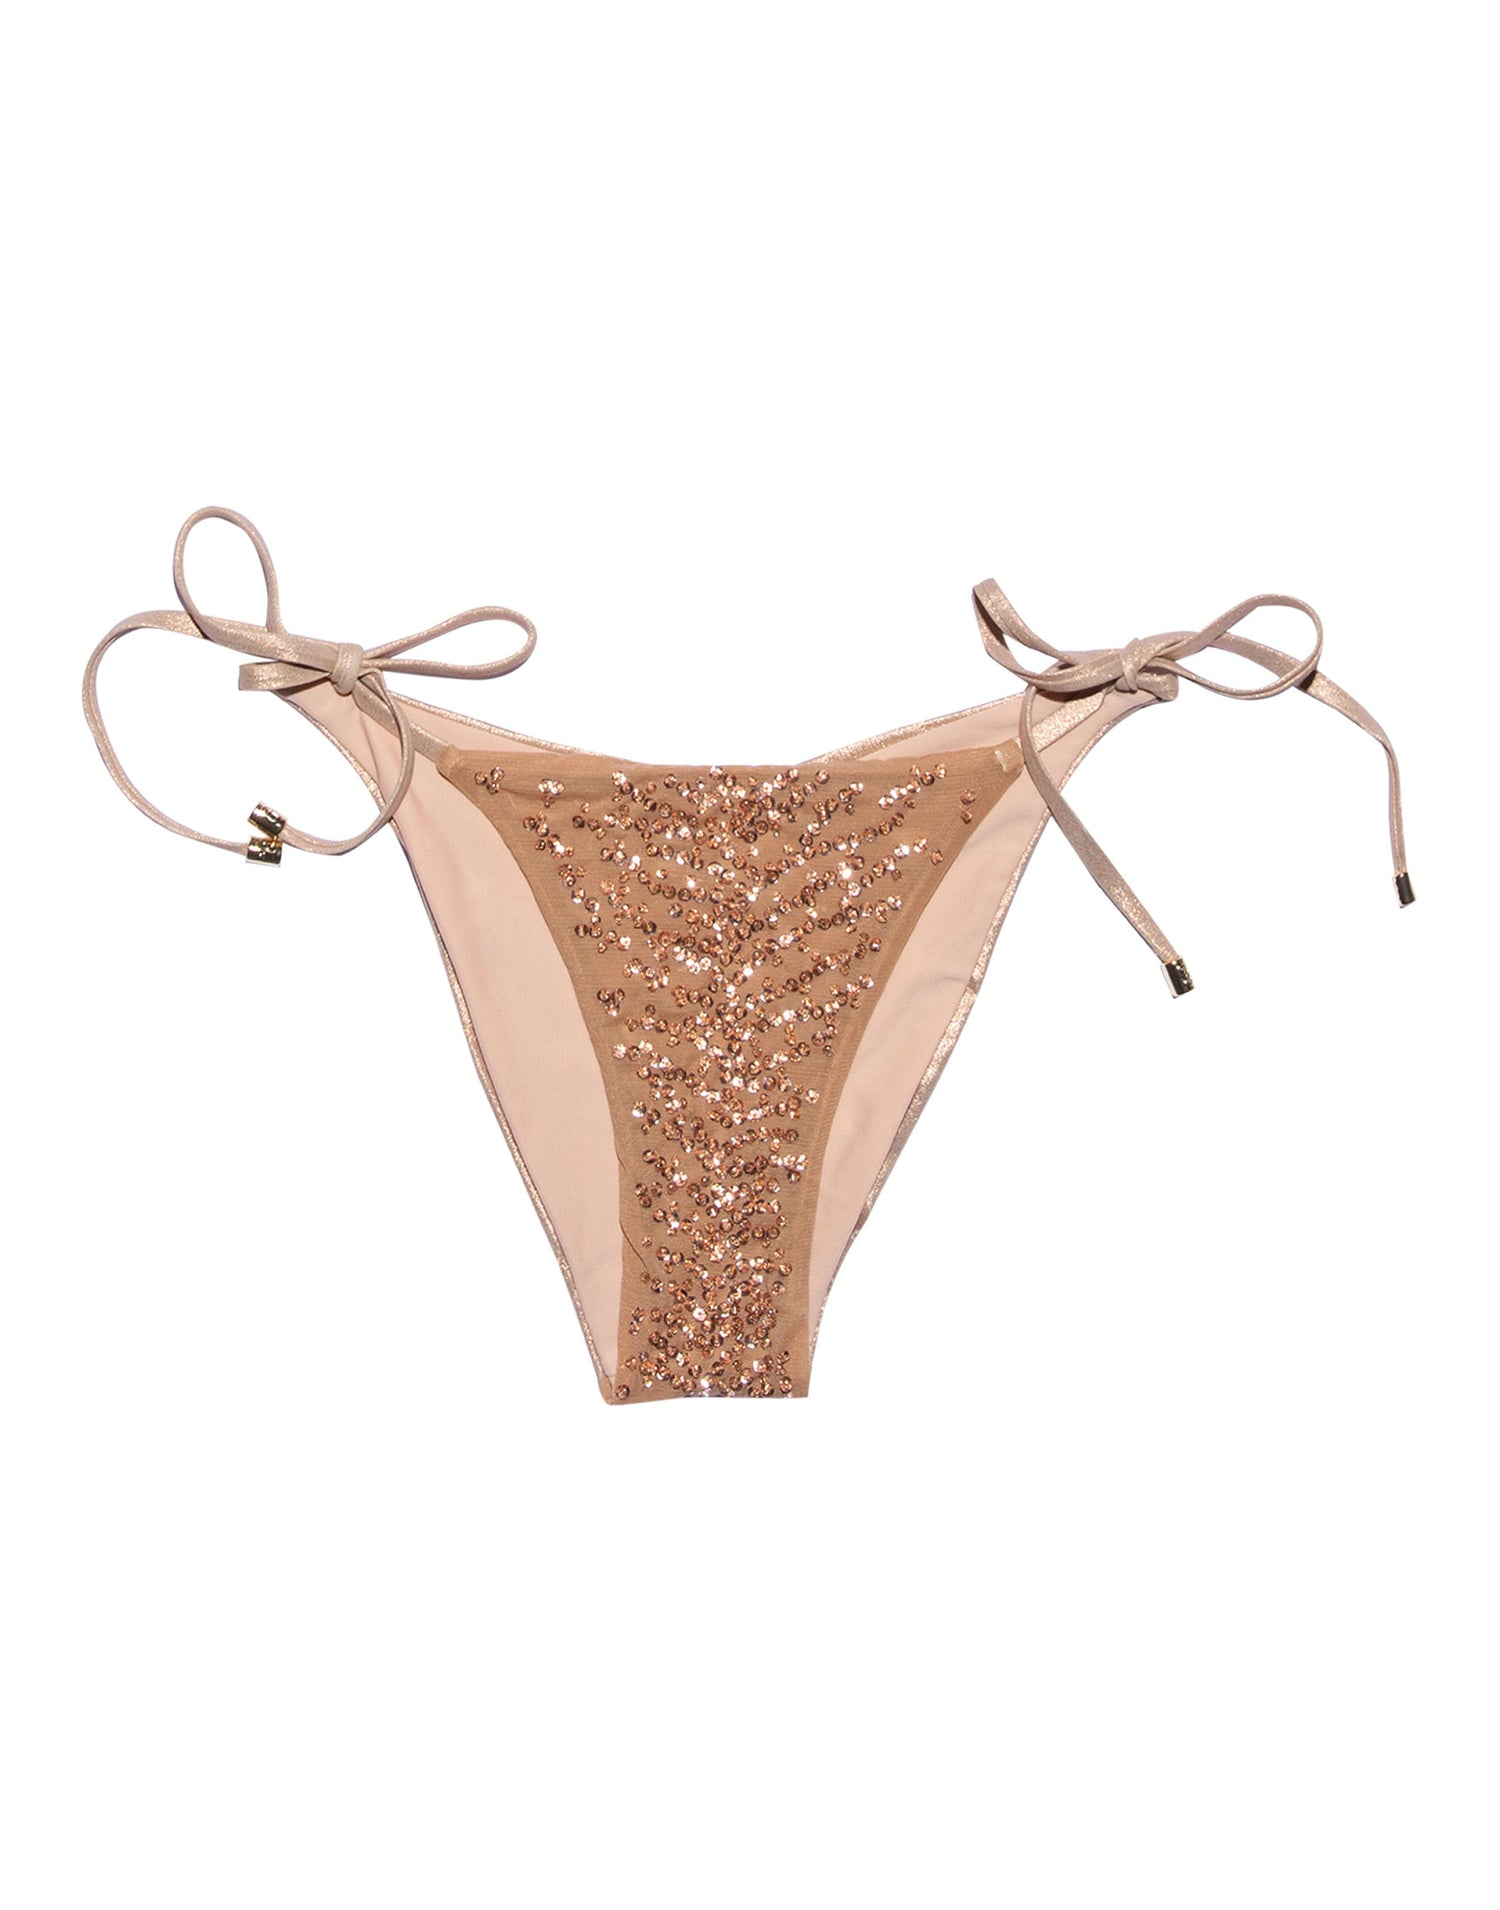 Nala Tie Side Skimpy Bikini Bottom in Rose Gold with Beads and Sequins - product view